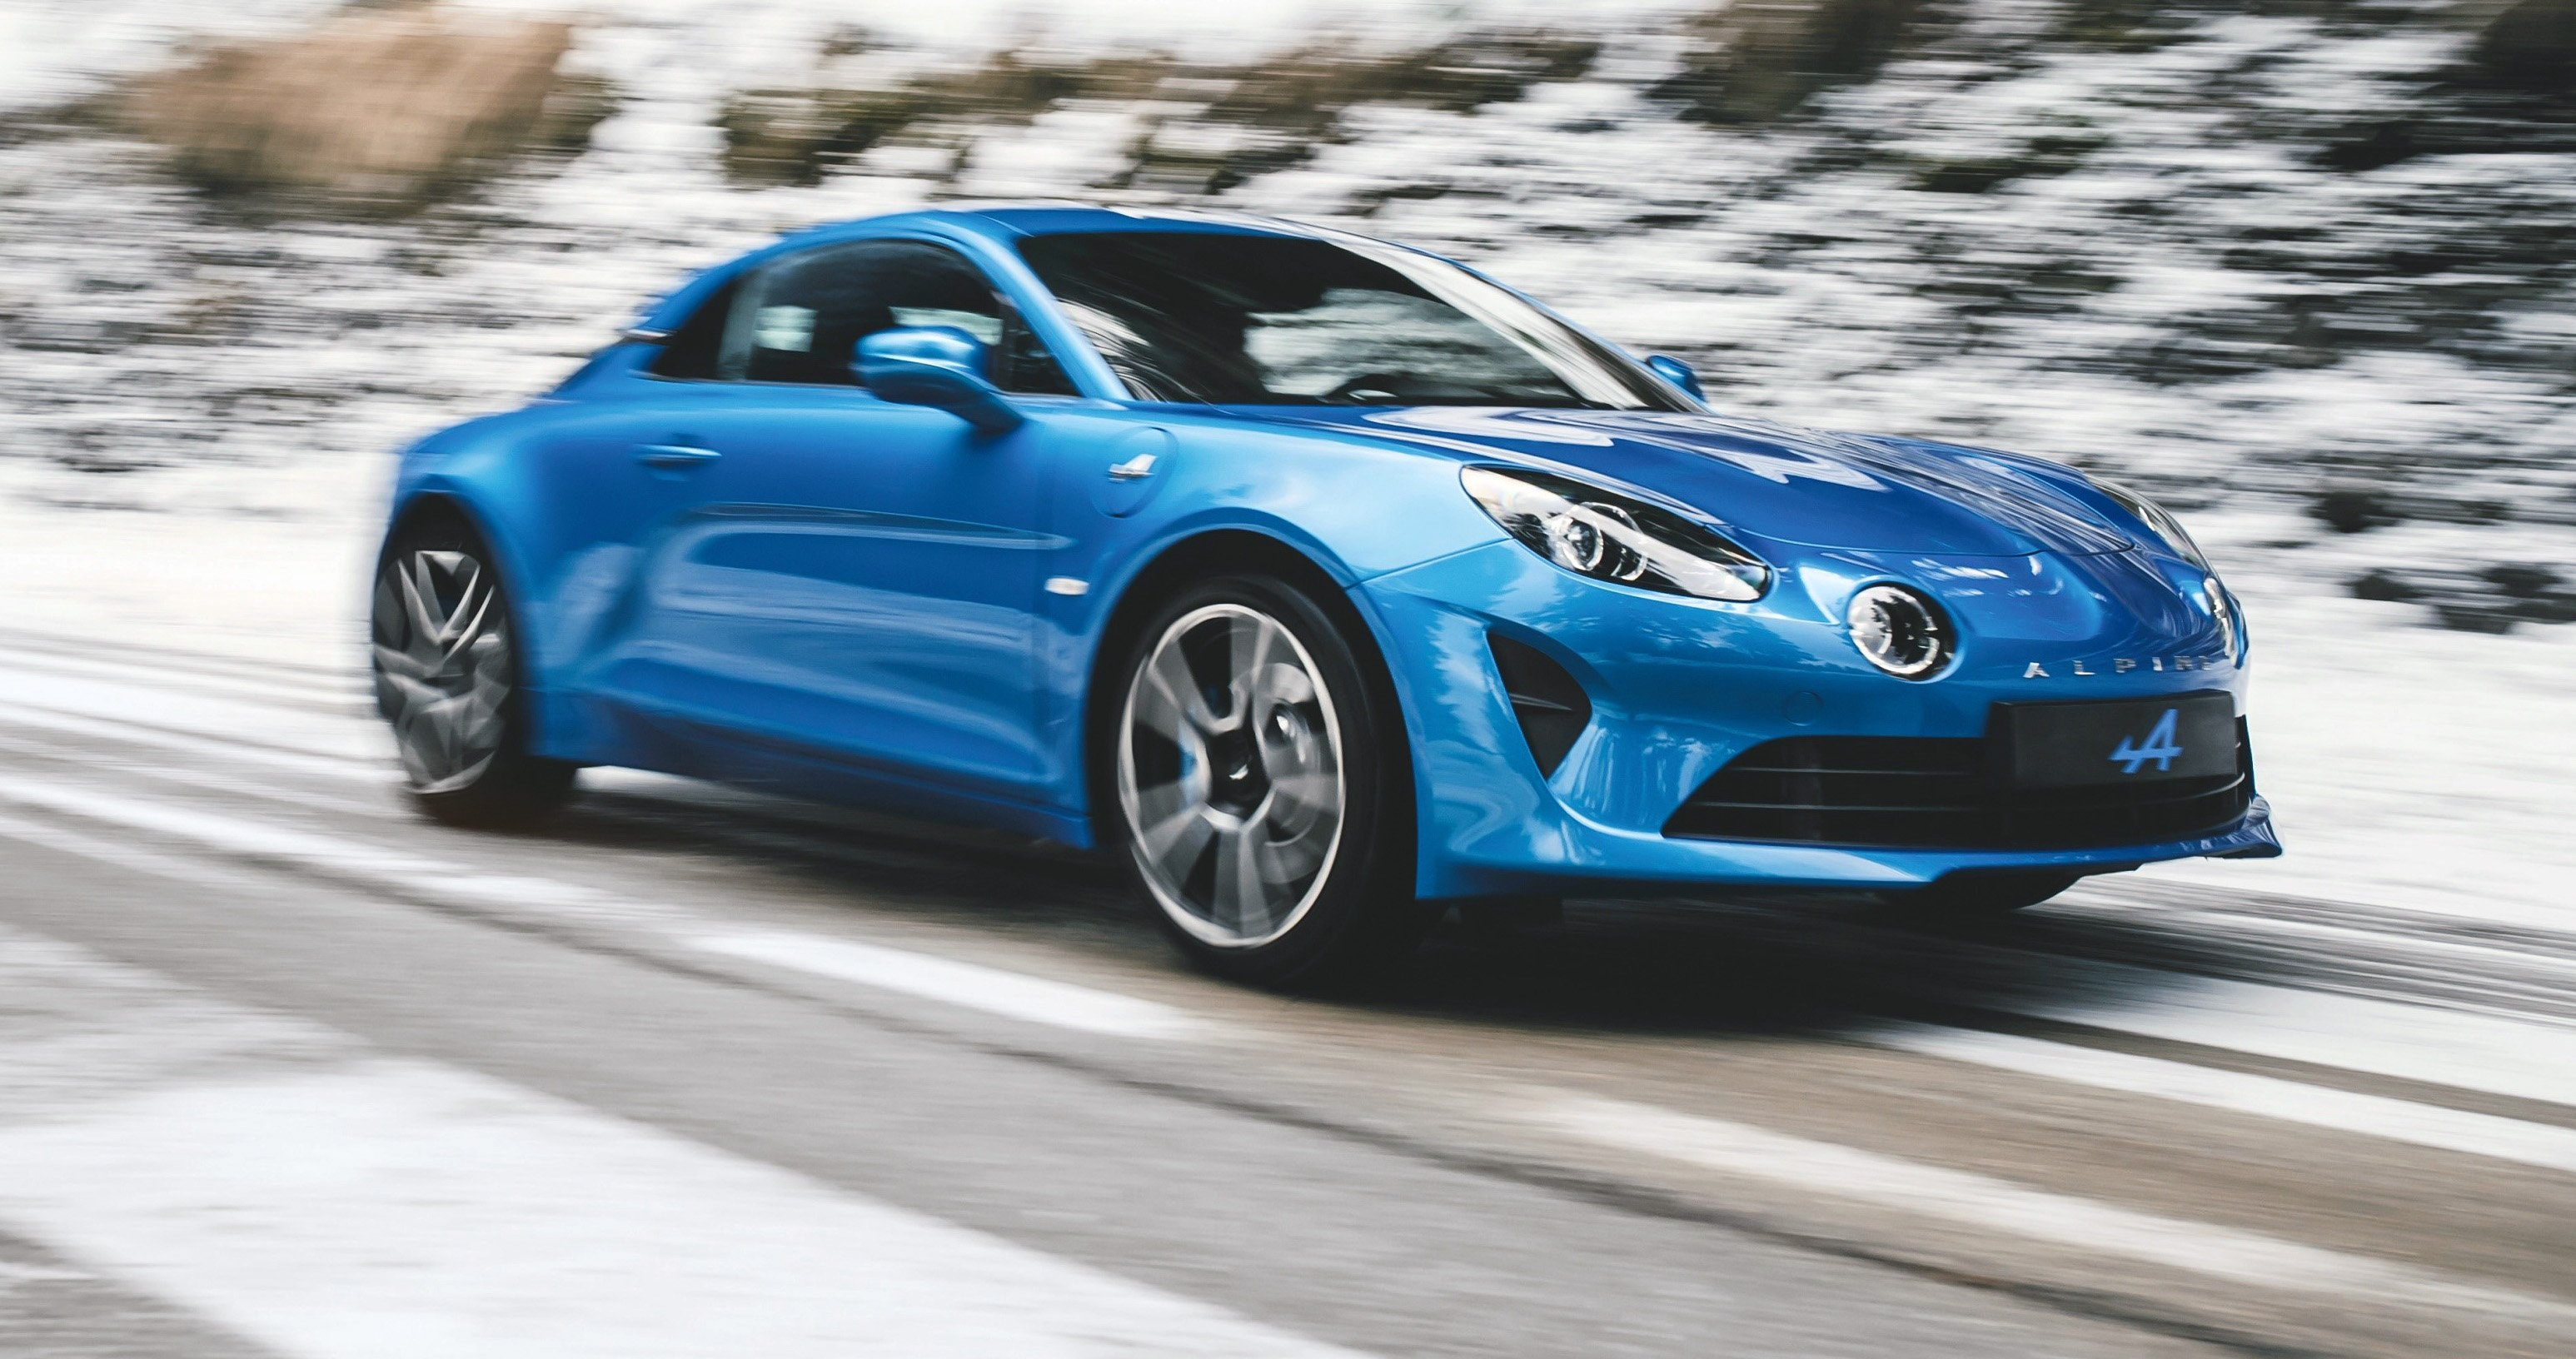 Luxury Sports Cars >> 2018 Alpine A110 detailed: video - photos | CarAdvice